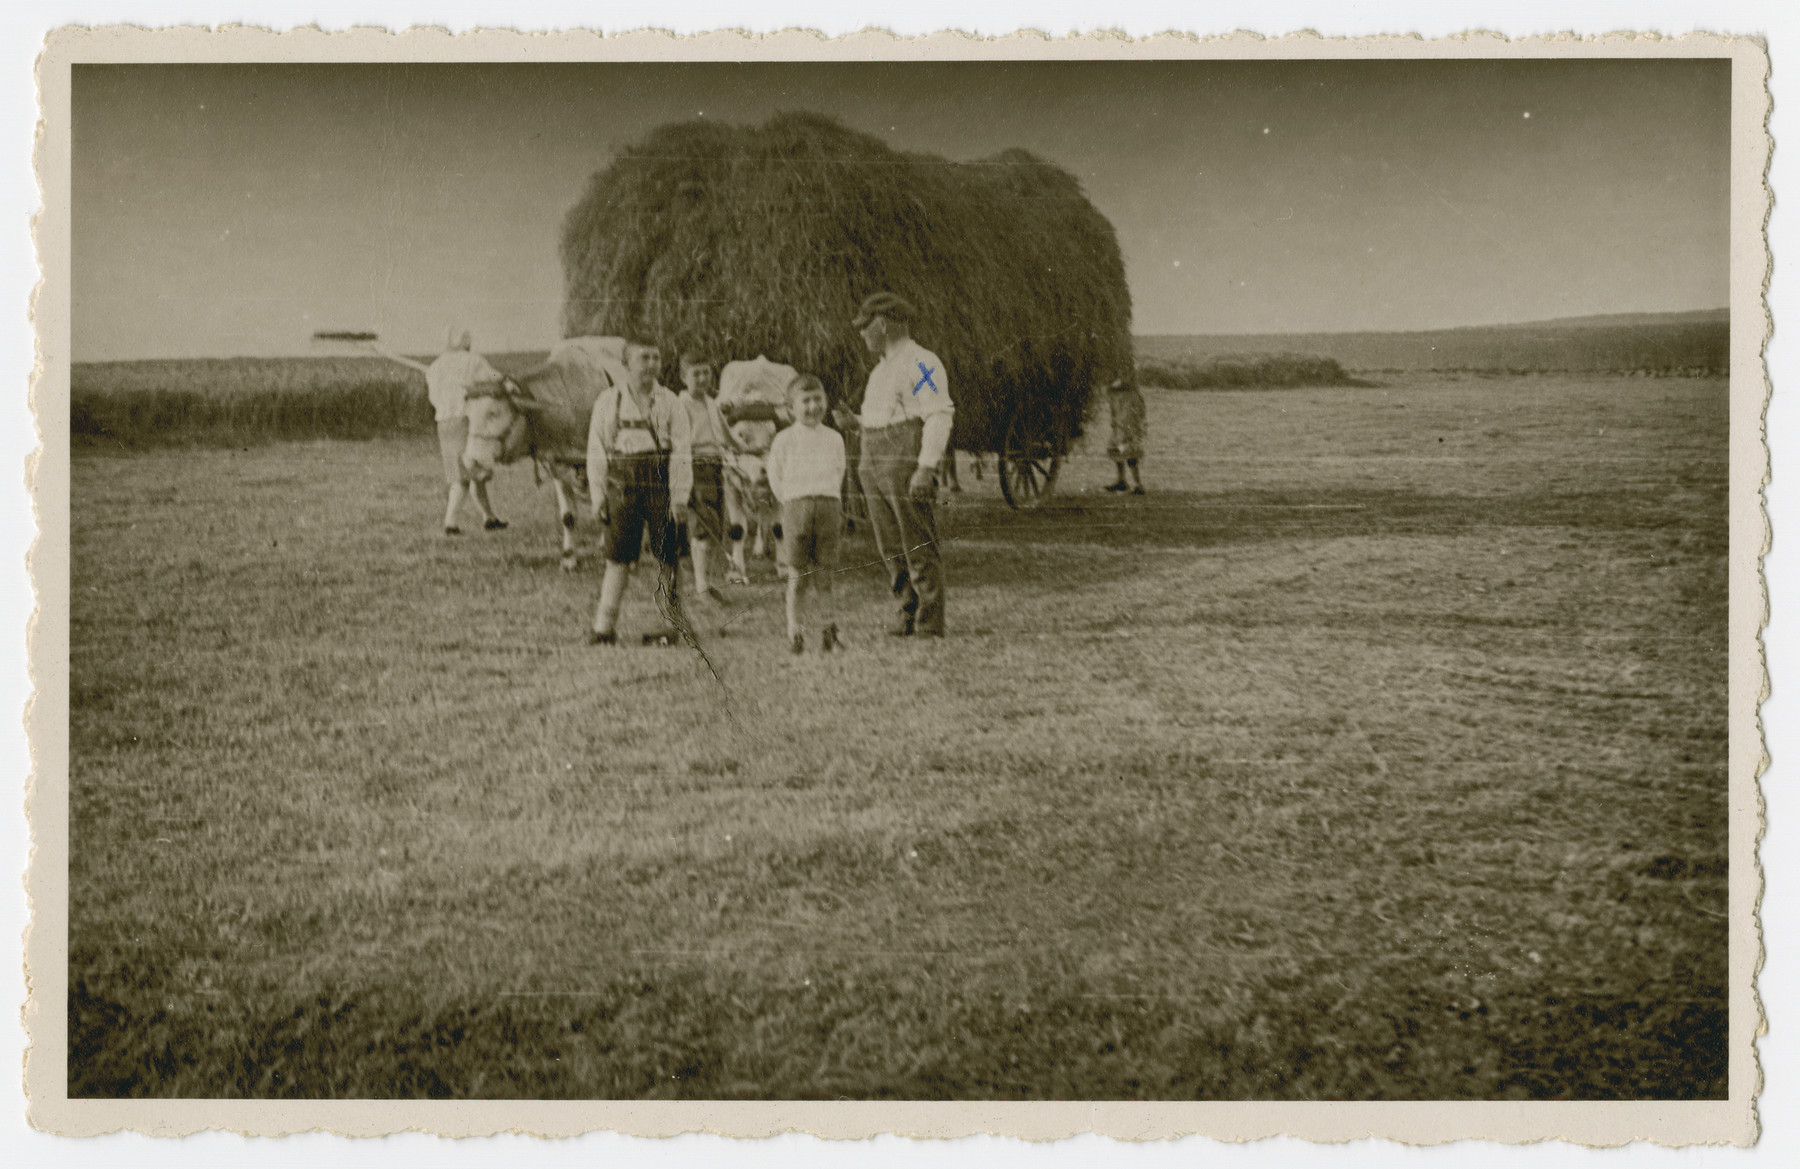 From left to right, Artur, Helmut, Norbert, and Sigmund Isenberg pose for a photograph during hay harvesting.